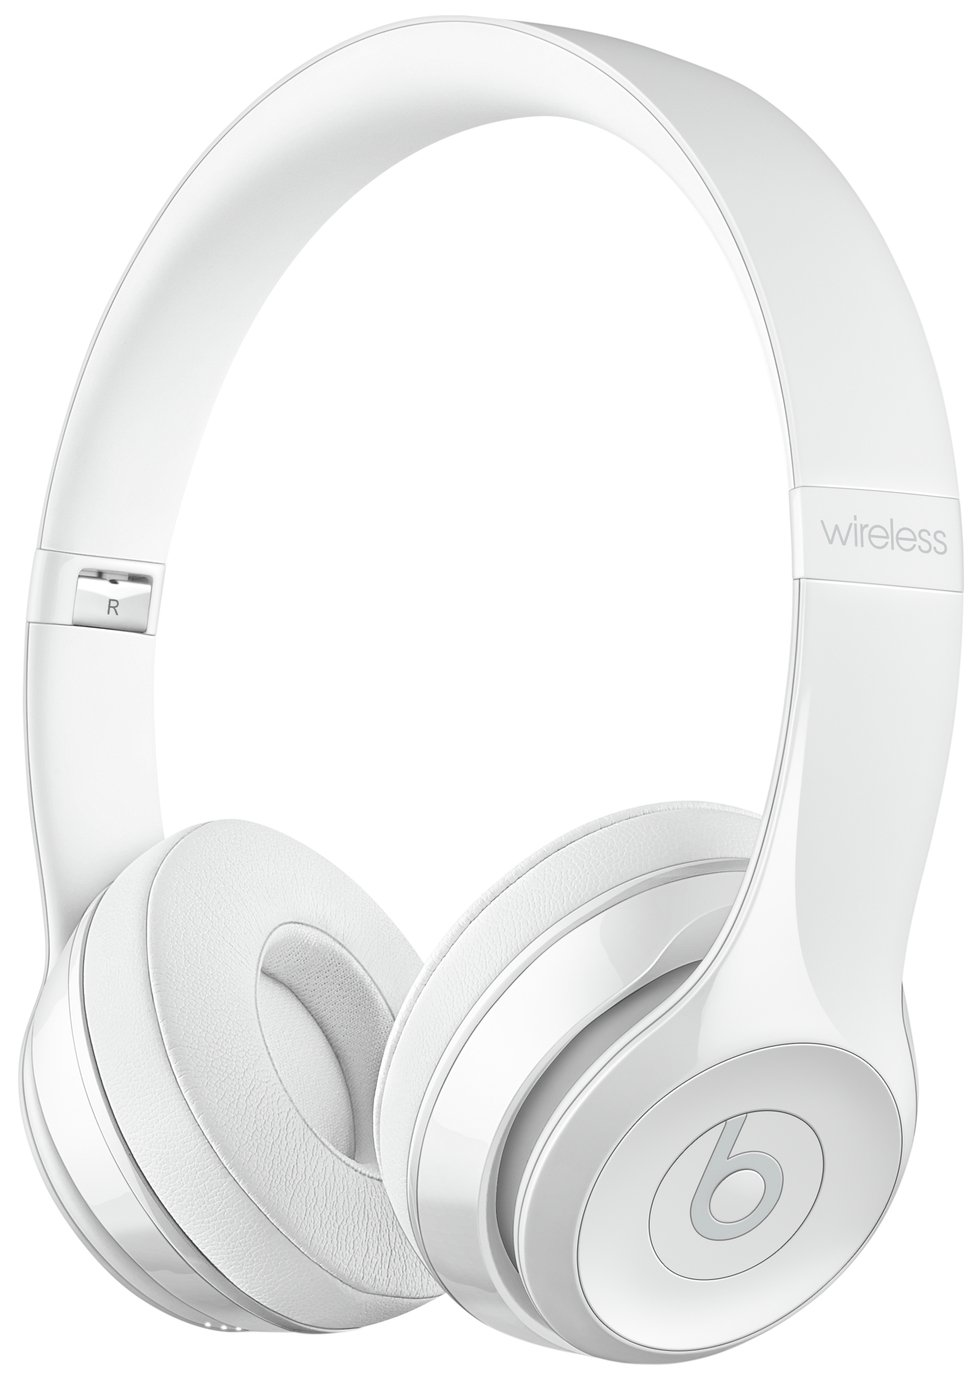 Image of Beats by Dre Solo 3 On-Ear Wireless Headphones - Gloss White